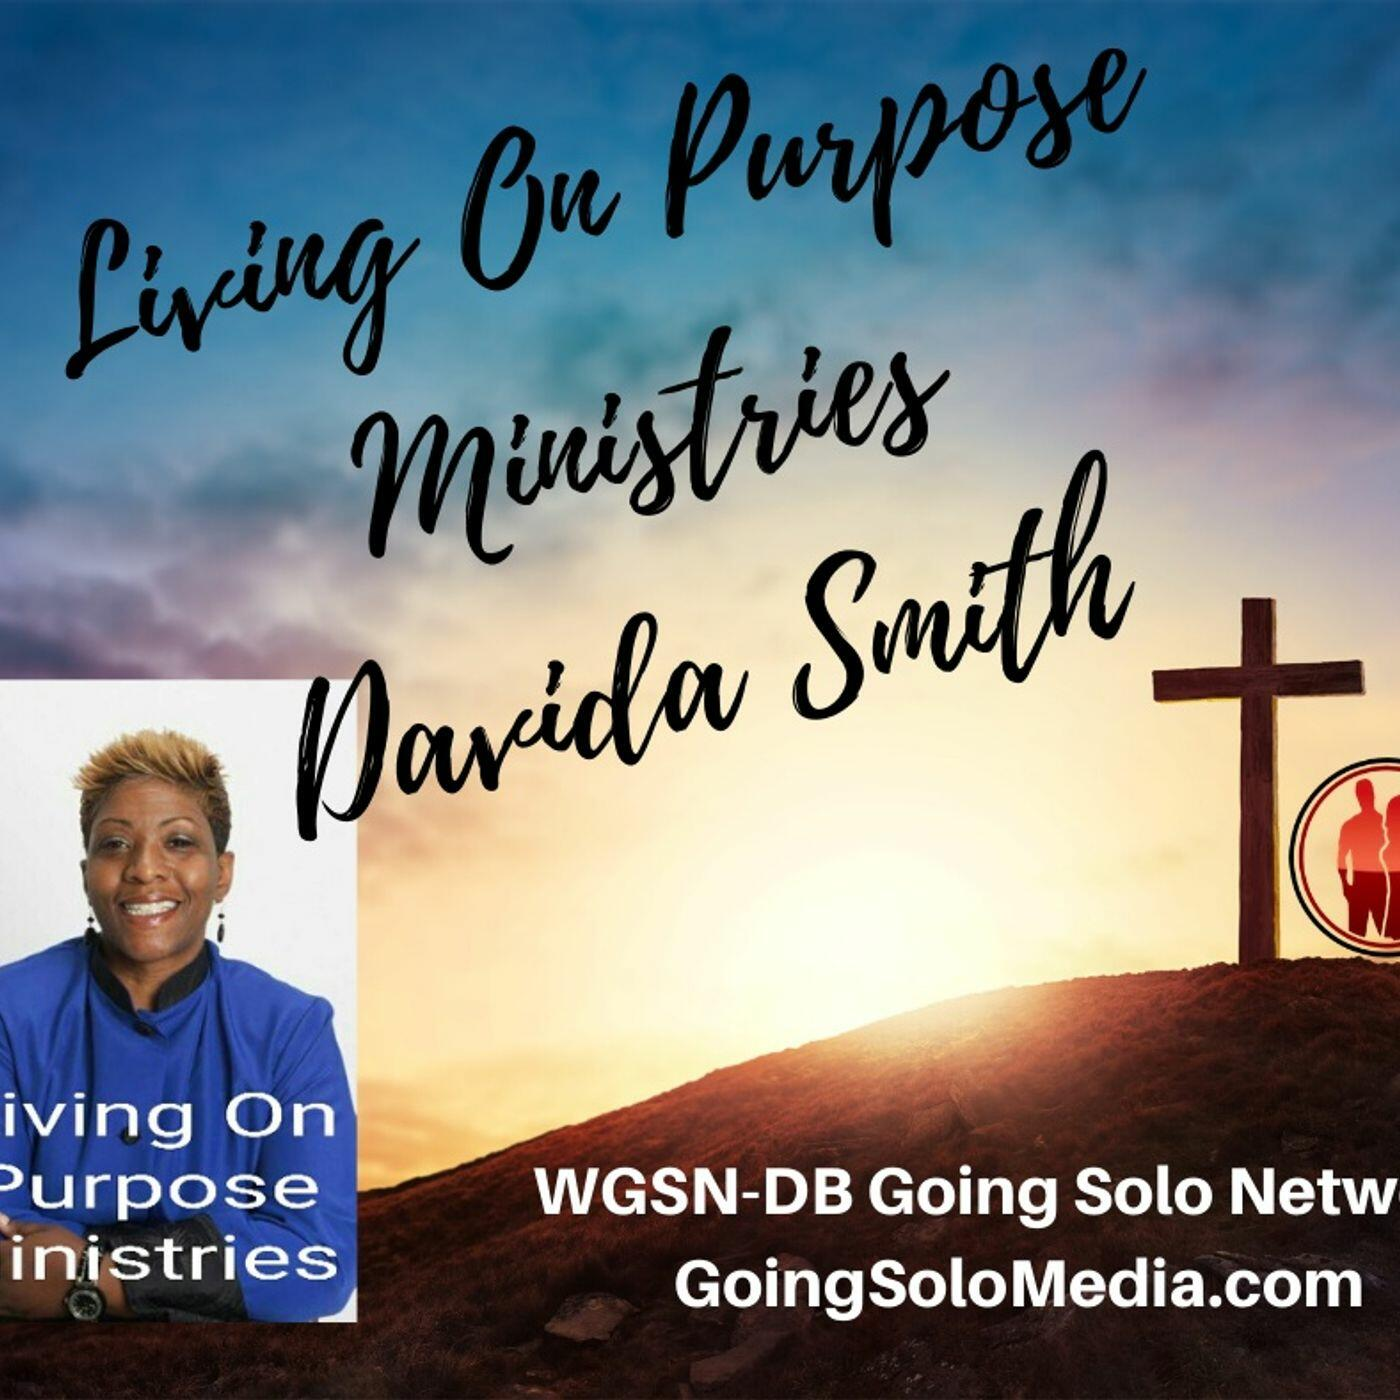 DavidaSmith Living On Purpose Ministries